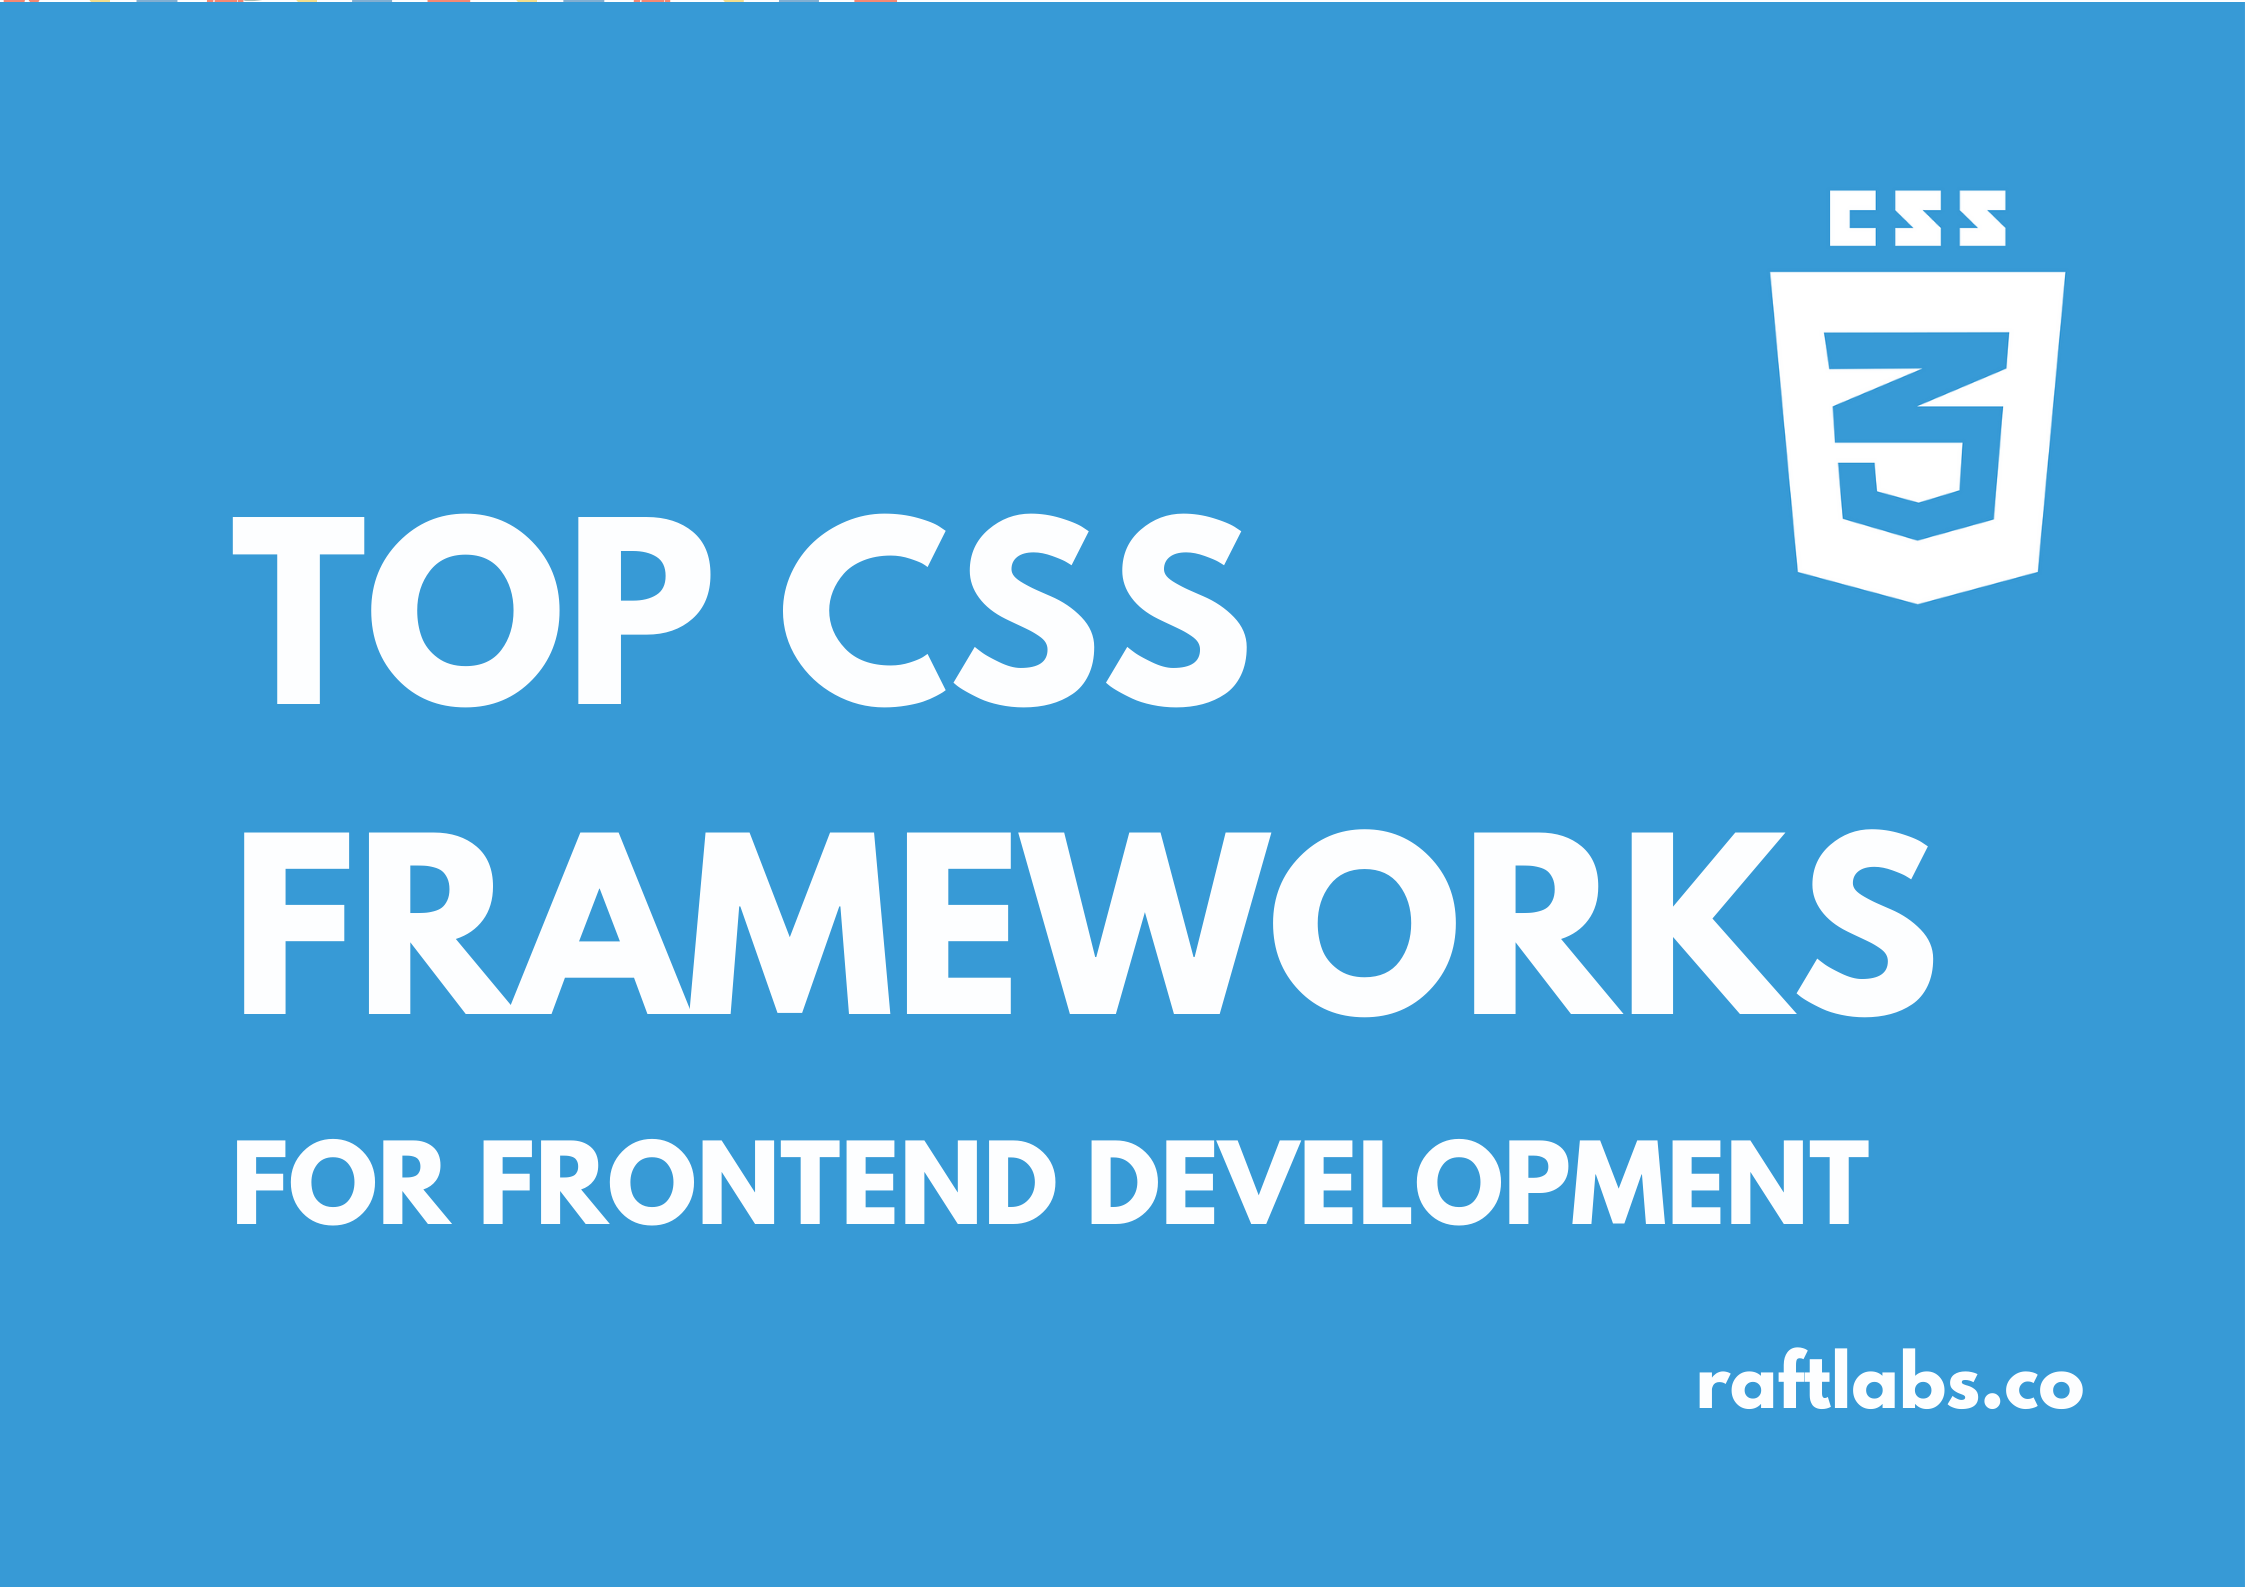 Top CSS framework for frontend development with CSS logo - raftlabs.co